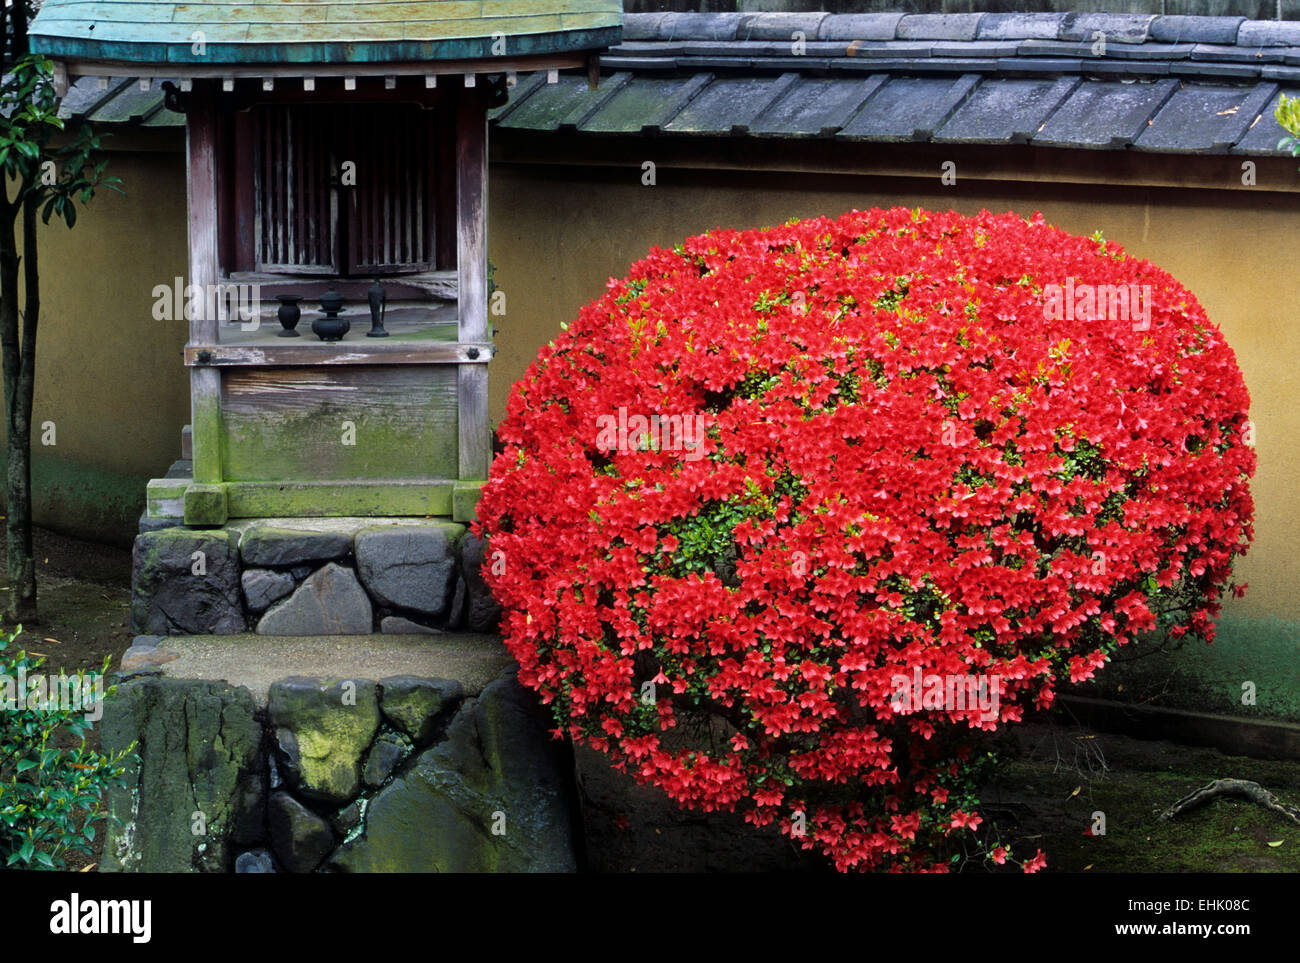 The City of Kyoto is a unique reserve for ancient Zen gardens and shrines that are over nine hundred years old - Stock Image